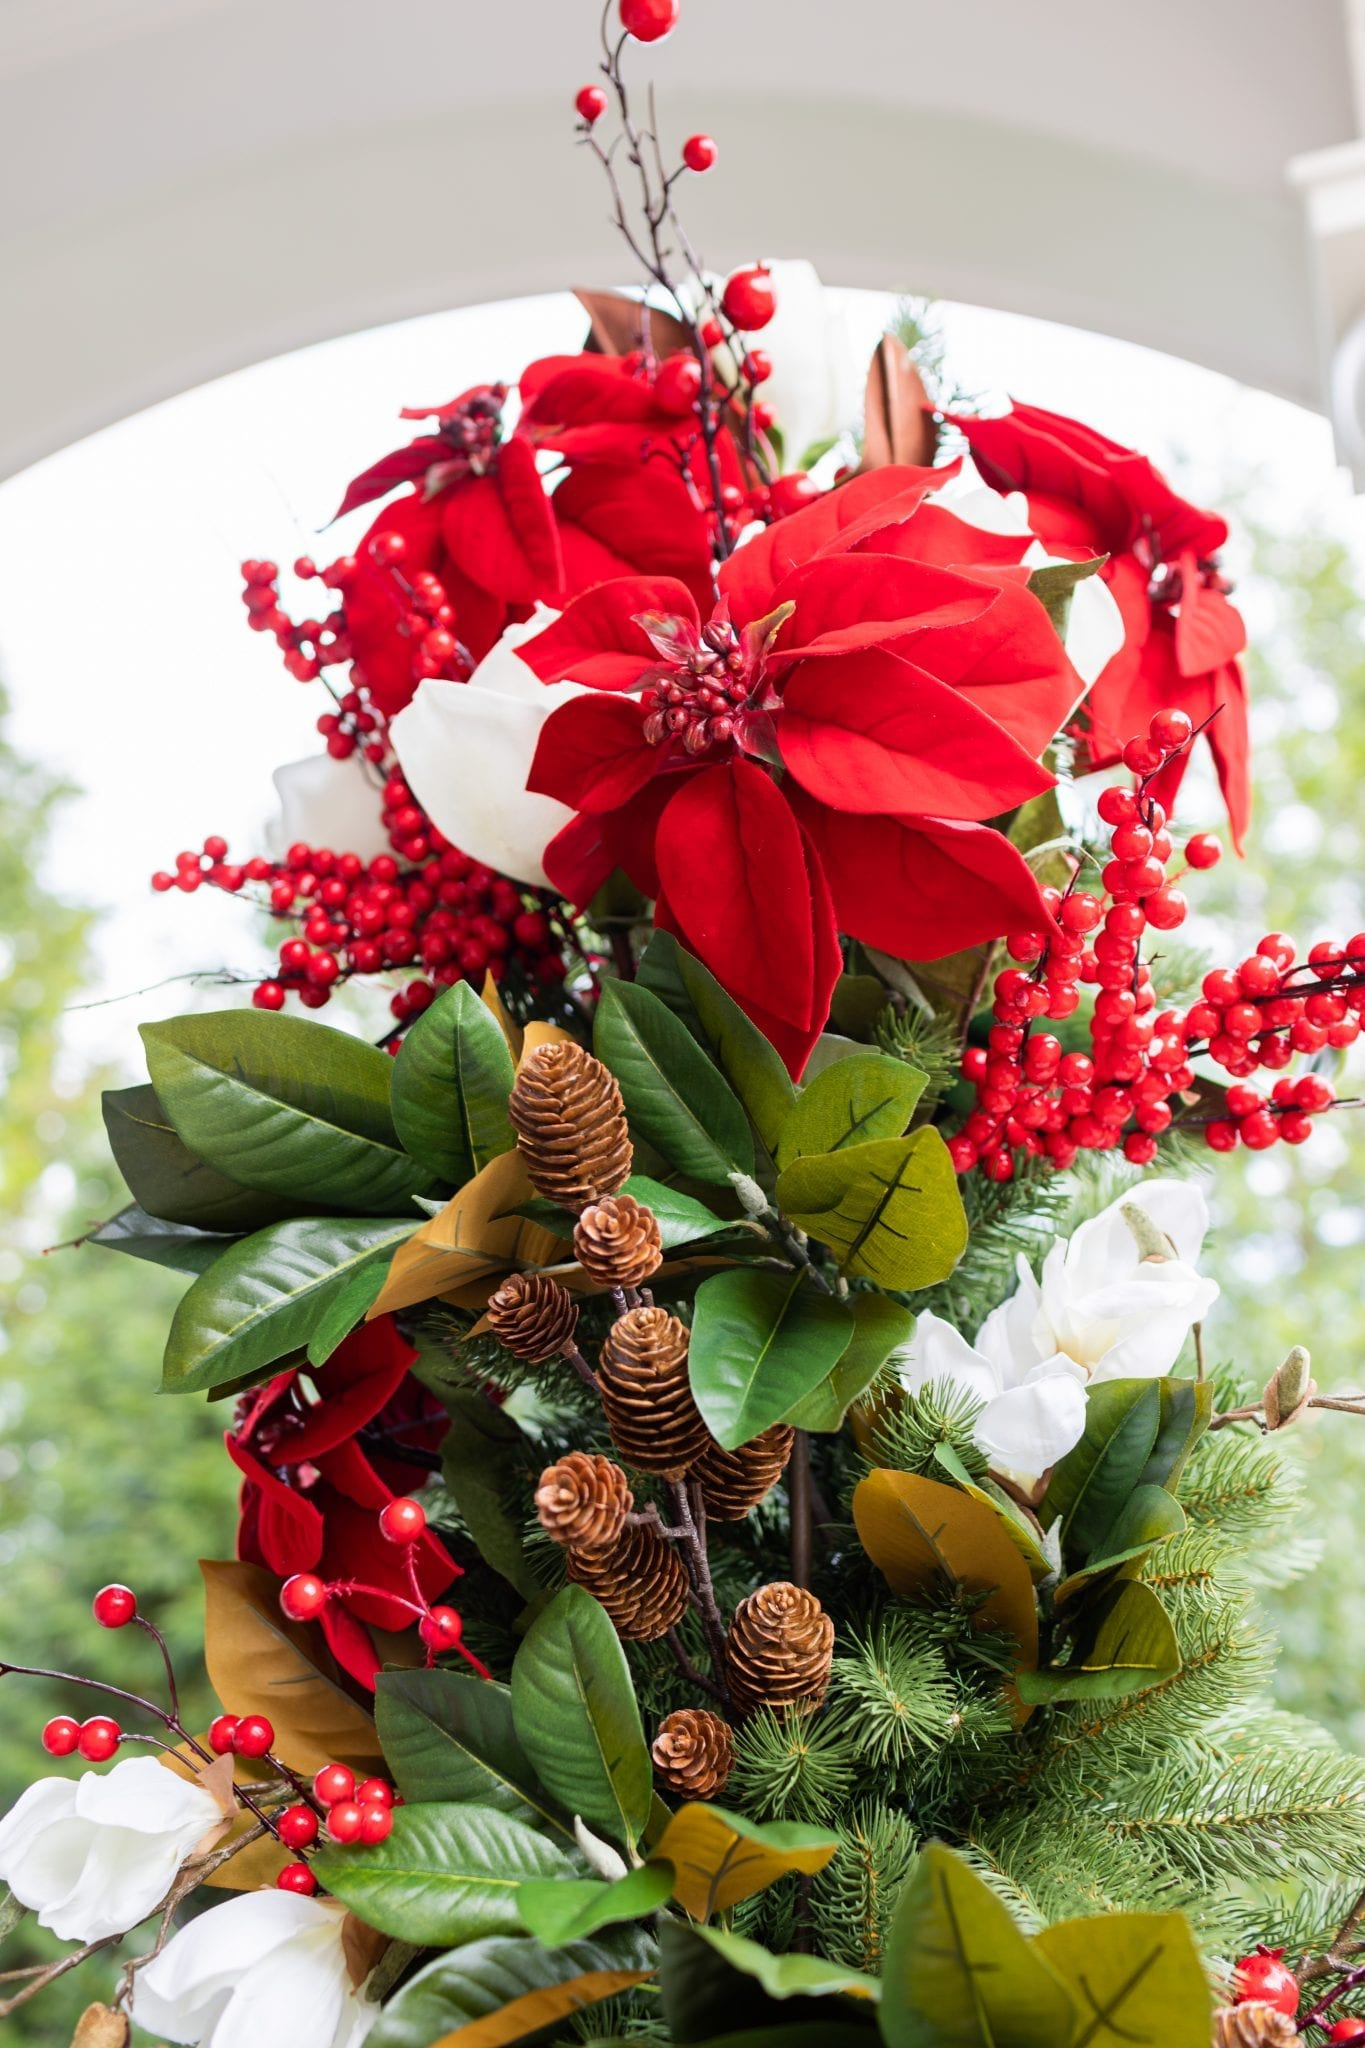 To create a simply southern Christmas, you need basic ingredients: magnolia, poinsettia & a bit of the outdoors! This magnolia tree is beautiful both inside or for balcony christmas decorations! If you need Christmas balcony ideas, this tree along with artificial poinsettia plants for outside may be just the ticket!